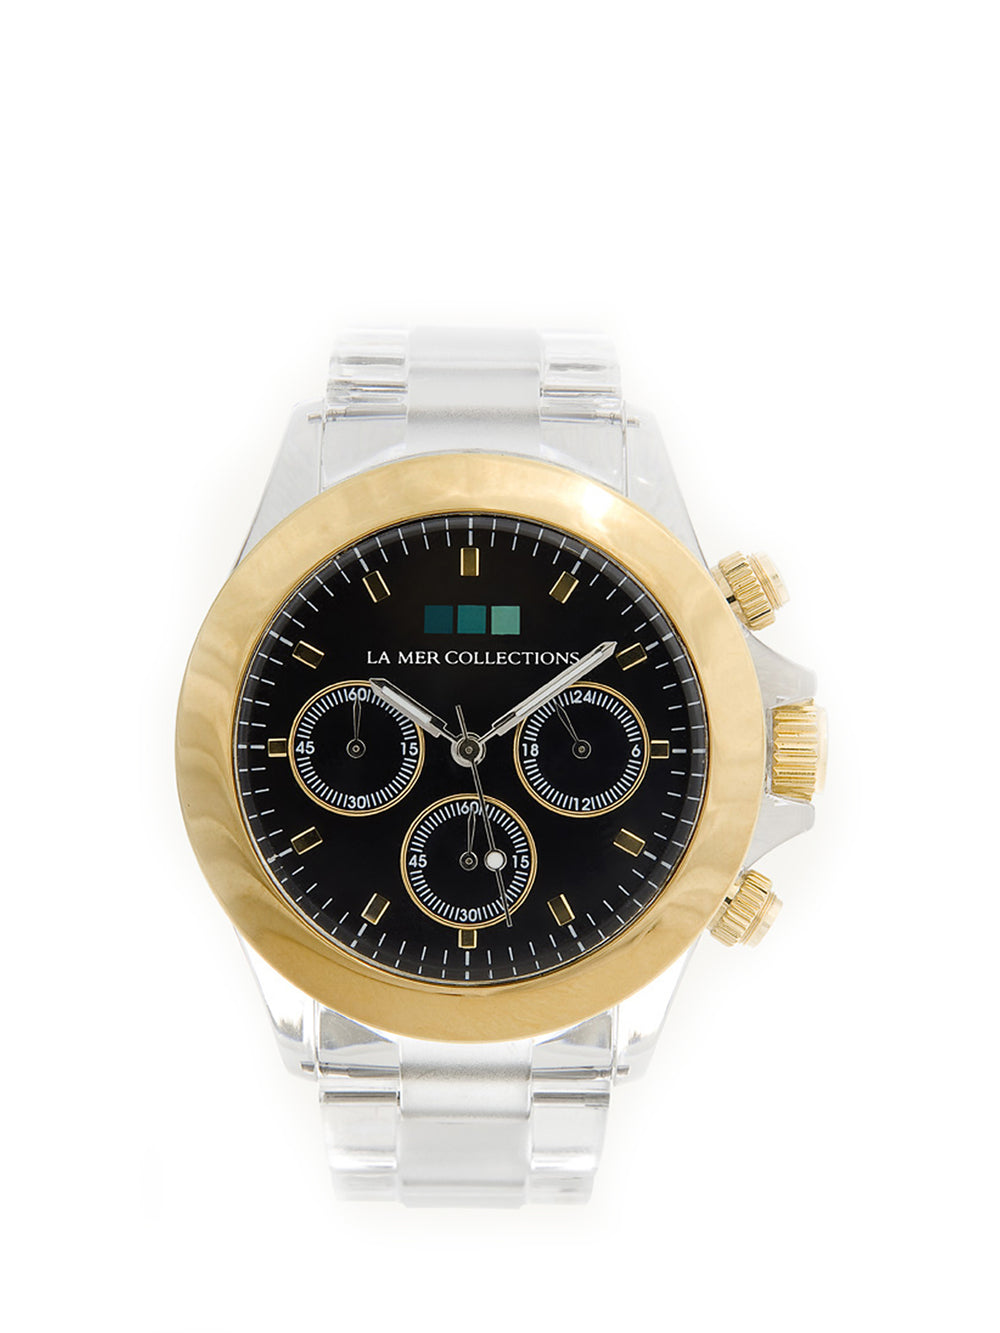 Gold Bezel  with Black Dial Watch, LA MER COLLECTIONS - elilhaam.com